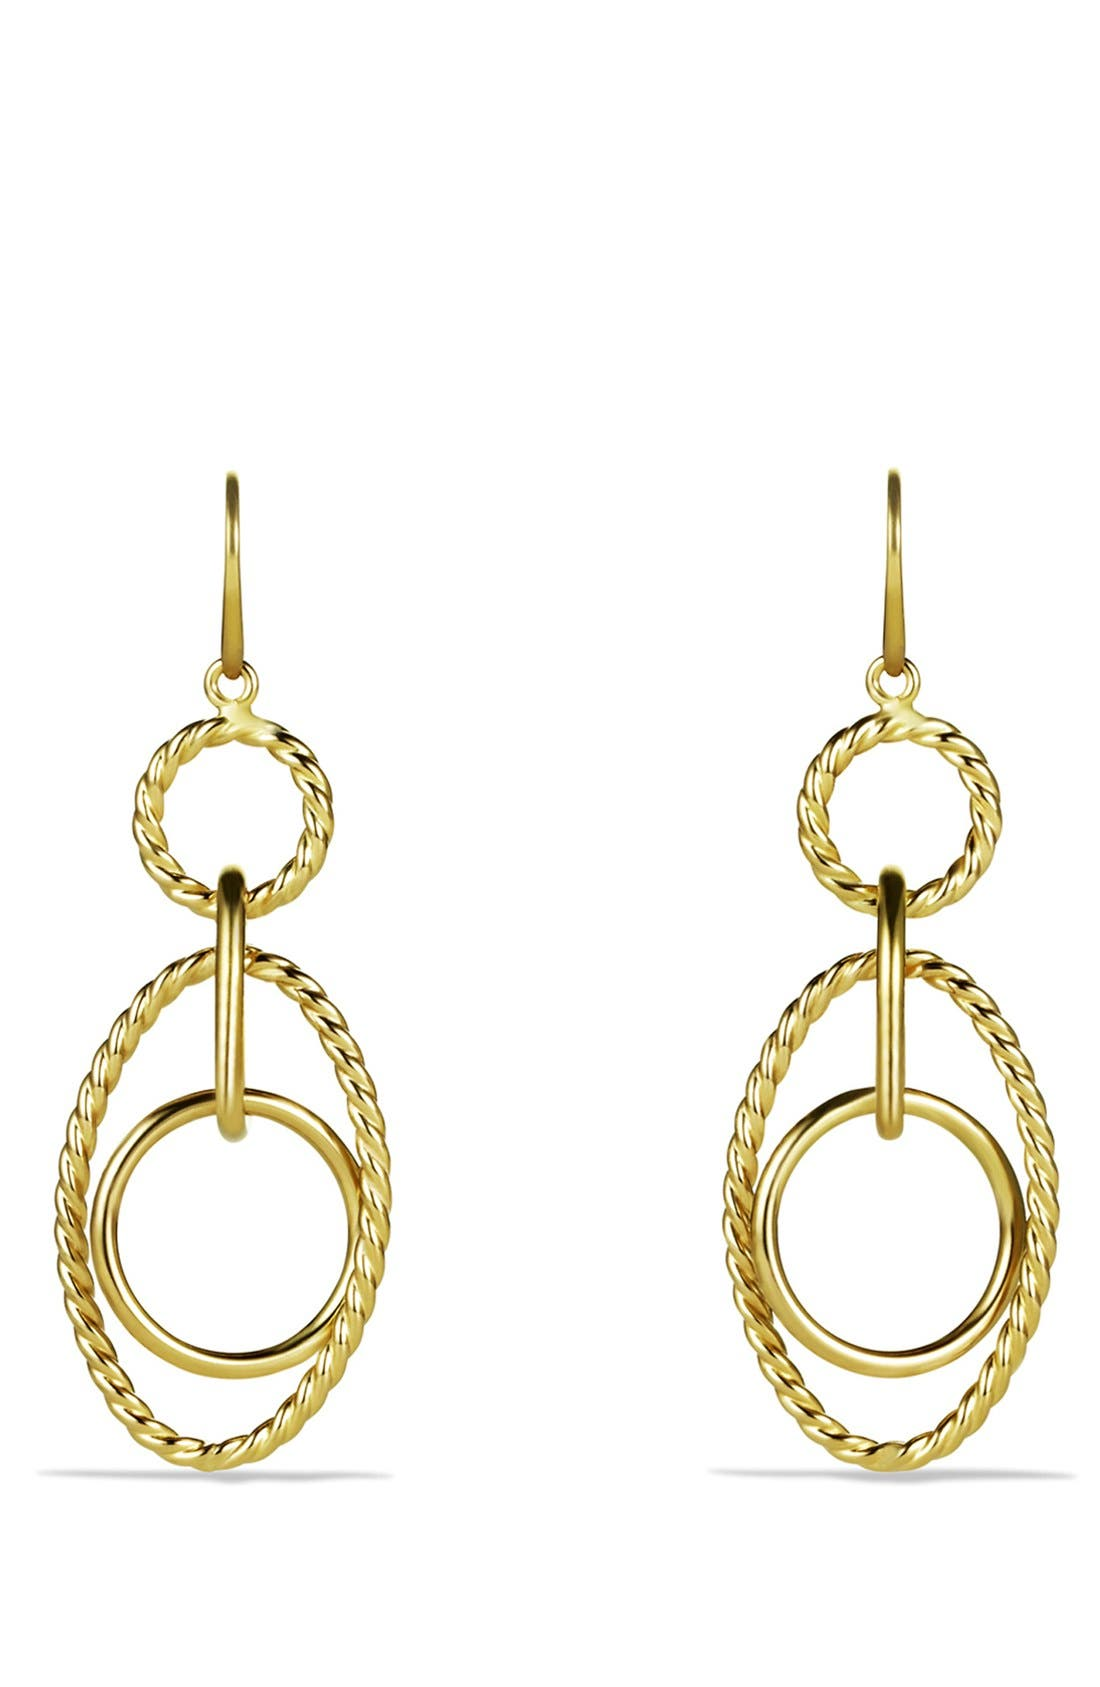 'Mobile' Small Link Earrings in Gold,                             Main thumbnail 1, color,                             Gold